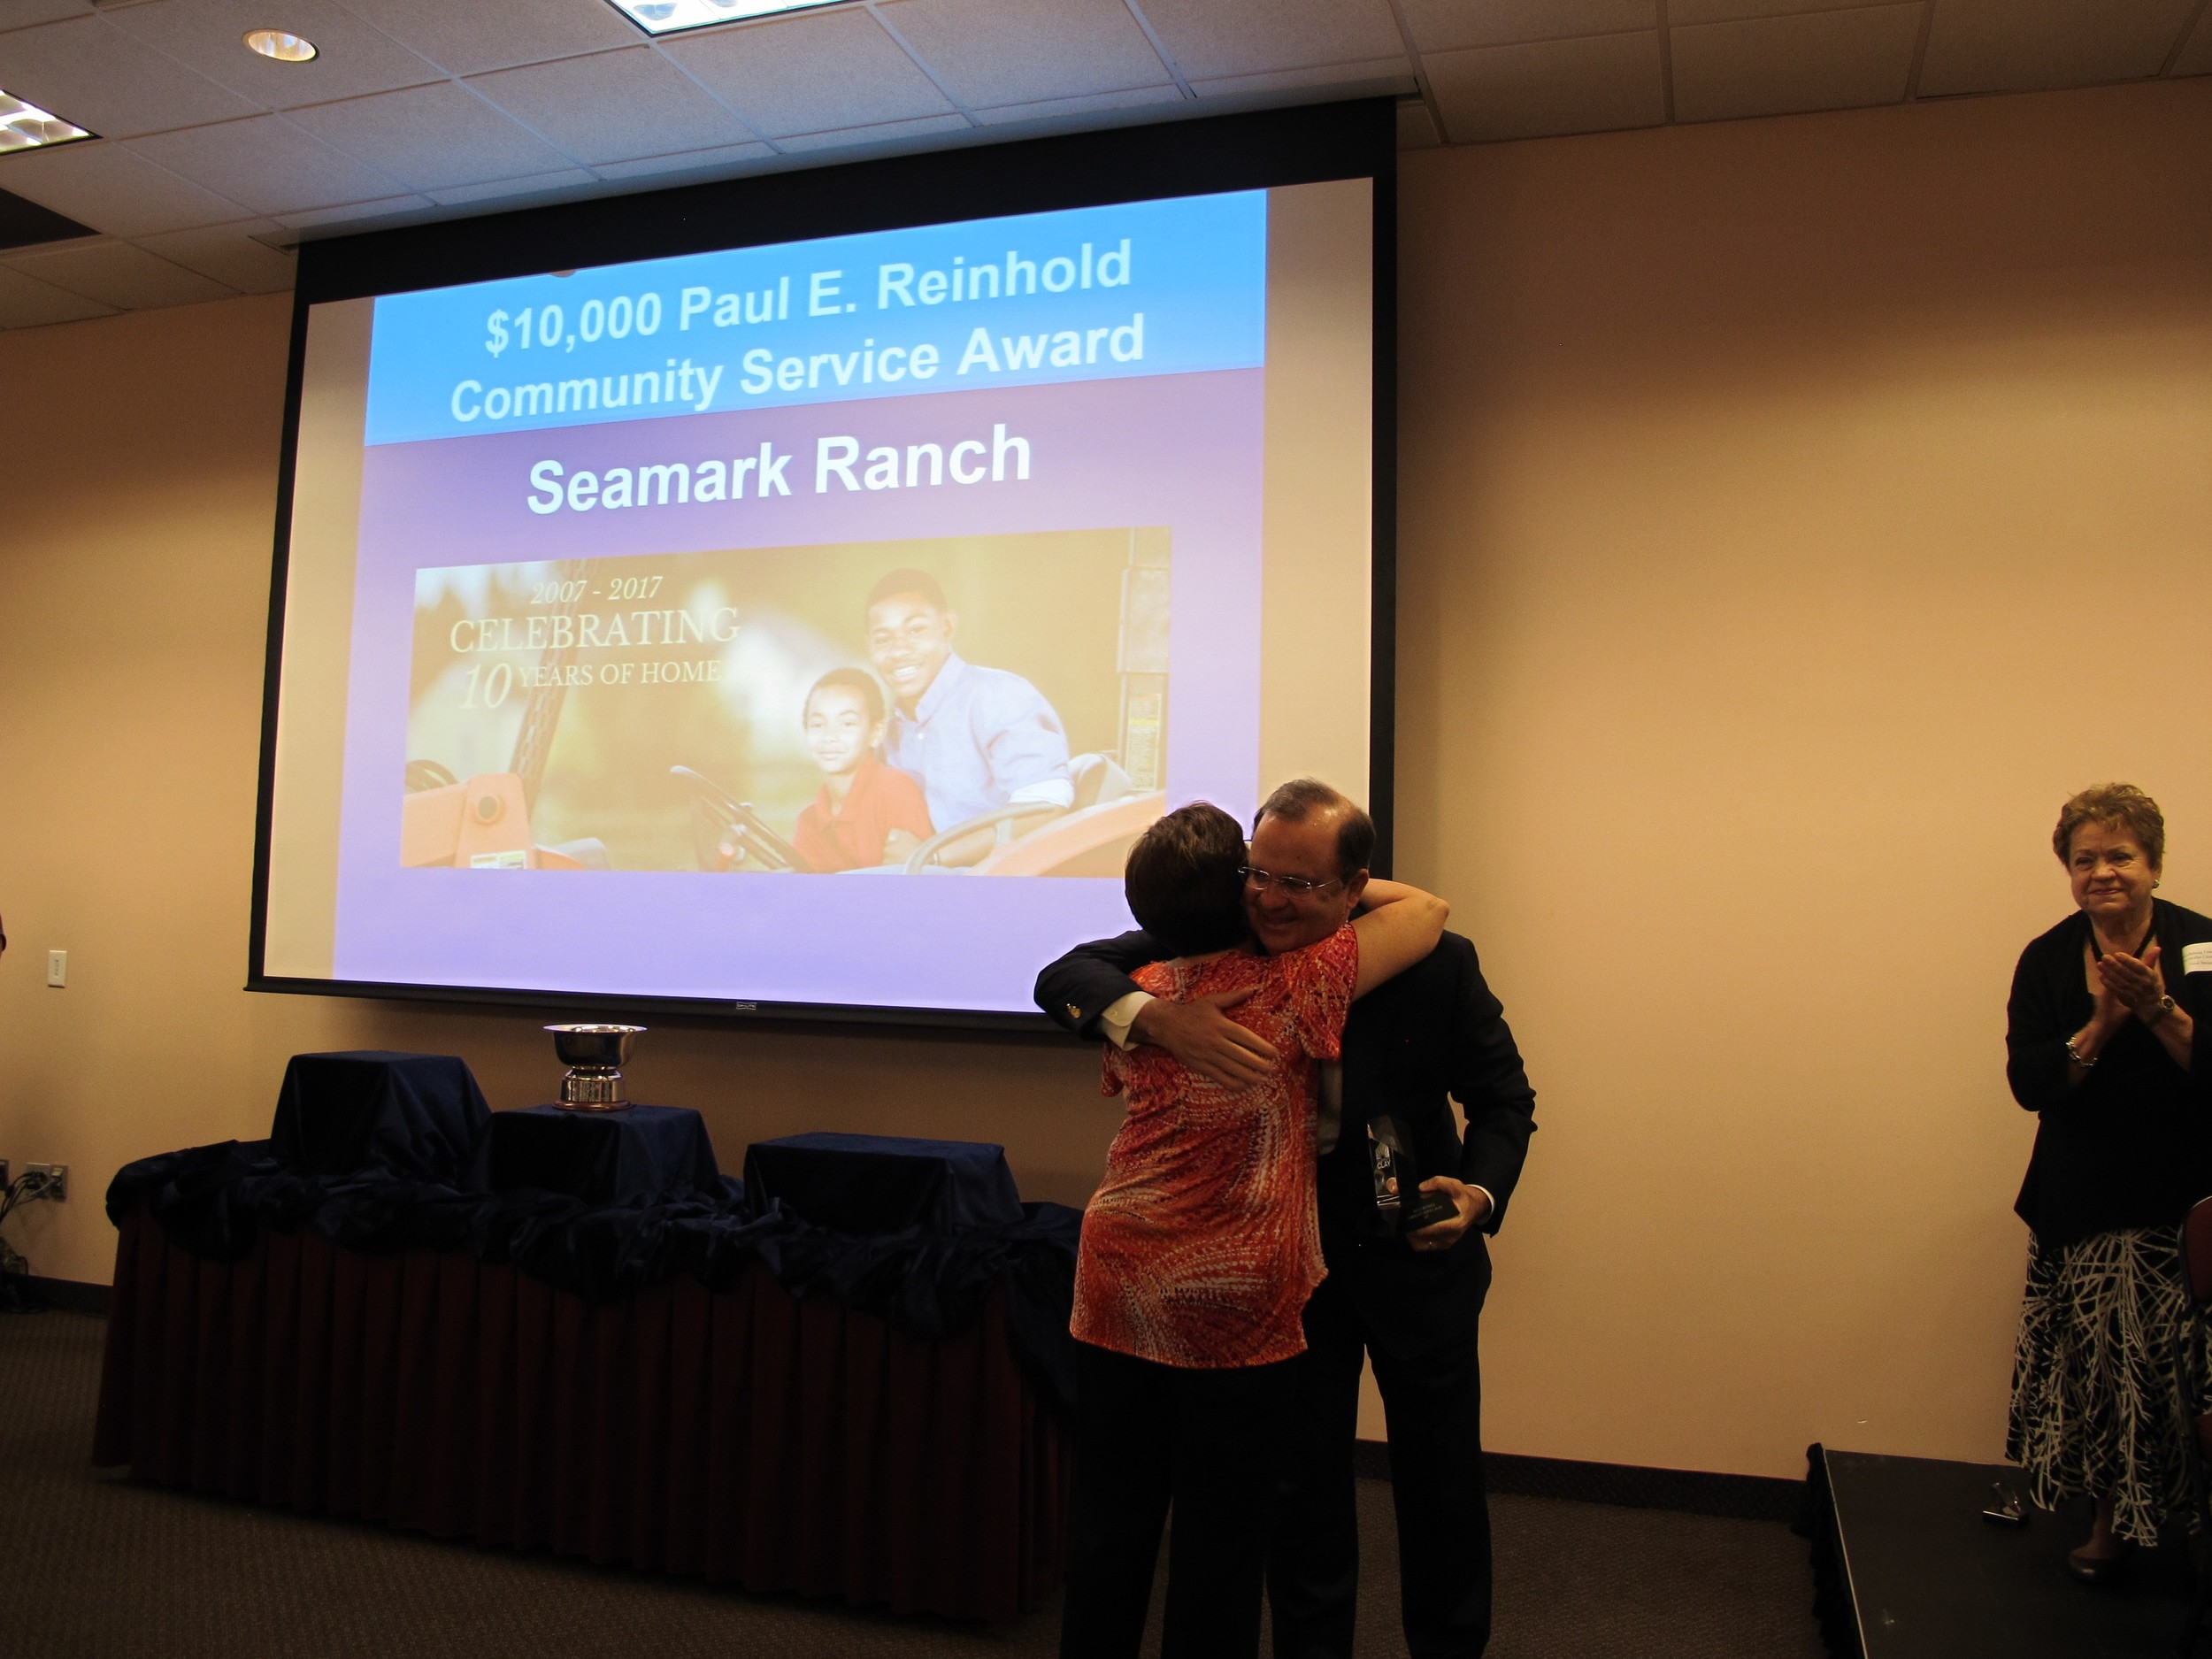 Seamark Ranch Paul E. Reinhold Community Service Award of the year received by Carleen Haney